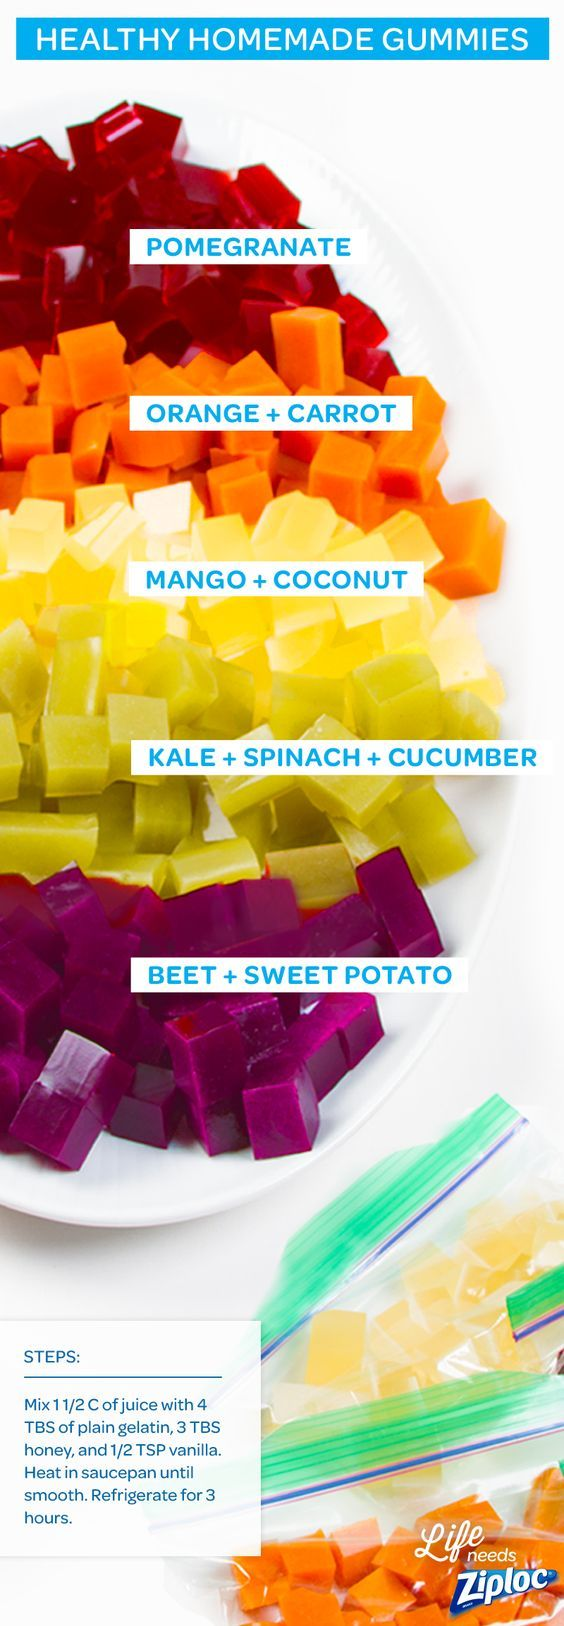 These DIY fruit and veggie gummies are so much healthier than what you'll find in a store. Plus, you can make them in bulk for easy lunch or after-work snacks. Just mix 1 ½ cups of fruit or veggie juice with 4 tablespoons of plain gelatin in a saucepan. Whisk it smooth, then stir in 3 tablespoons of honey and ½ teaspoon of vanilla (you can lighten the color by adding a little bit of coconut milk). Chill in a Ziploc®️️ container in the fridge for 2-3 hours, then cube!